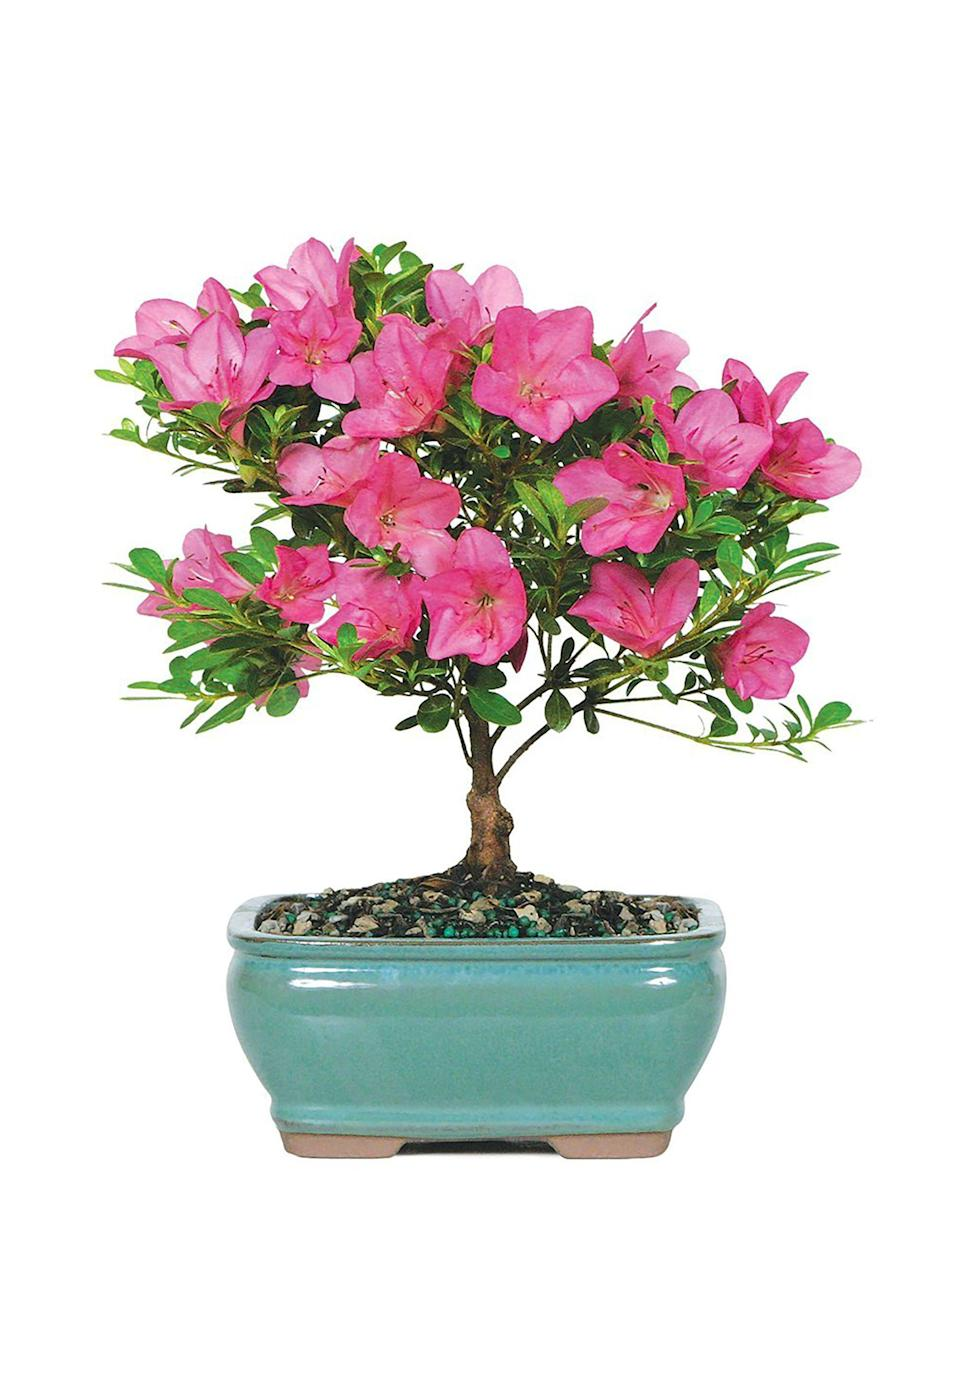 "<p><strong>Brussel's Bonsai</strong></p><p>amazon.com</p><p><strong>$28.00</strong></p><p><a href=""http://www.amazon.com/dp/B0000DG8AR/?tag=syn-yahoo-20&ascsubtag=%5Bartid%7C10050.g.4835%5Bsrc%7Cyahoo-us"" rel=""nofollow noopener"" target=""_blank"" data-ylk=""slk:Shop Now"" class=""link rapid-noclick-resp"">Shop Now</a></p><p>Add a touch of greenery to Mom's work space with this blooming azalea bonsai tree (plus, check out some of the other plant options at <a href=""https://www.amazon.com/b?node=15280263011"" rel=""nofollow noopener"" target=""_blank"" data-ylk=""slk:Amazon's new plant store"" class=""link rapid-noclick-resp"">Amazon's new plant store</a>!).</p>"